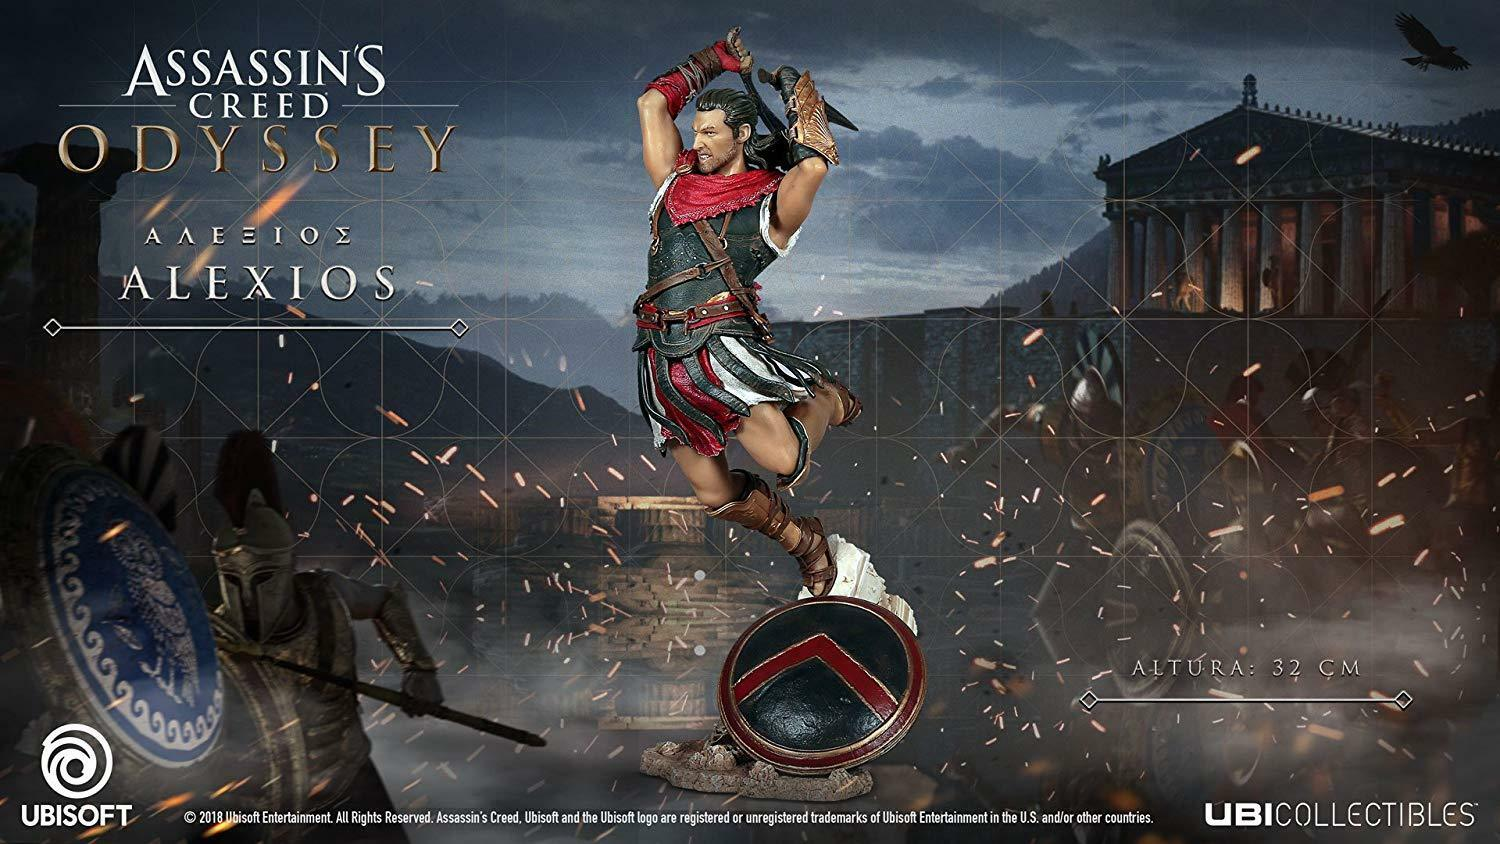 UbiCollectibles Assassins Creed Odyssey 12.5  Alexios PVC Statue (BRAND NEW)